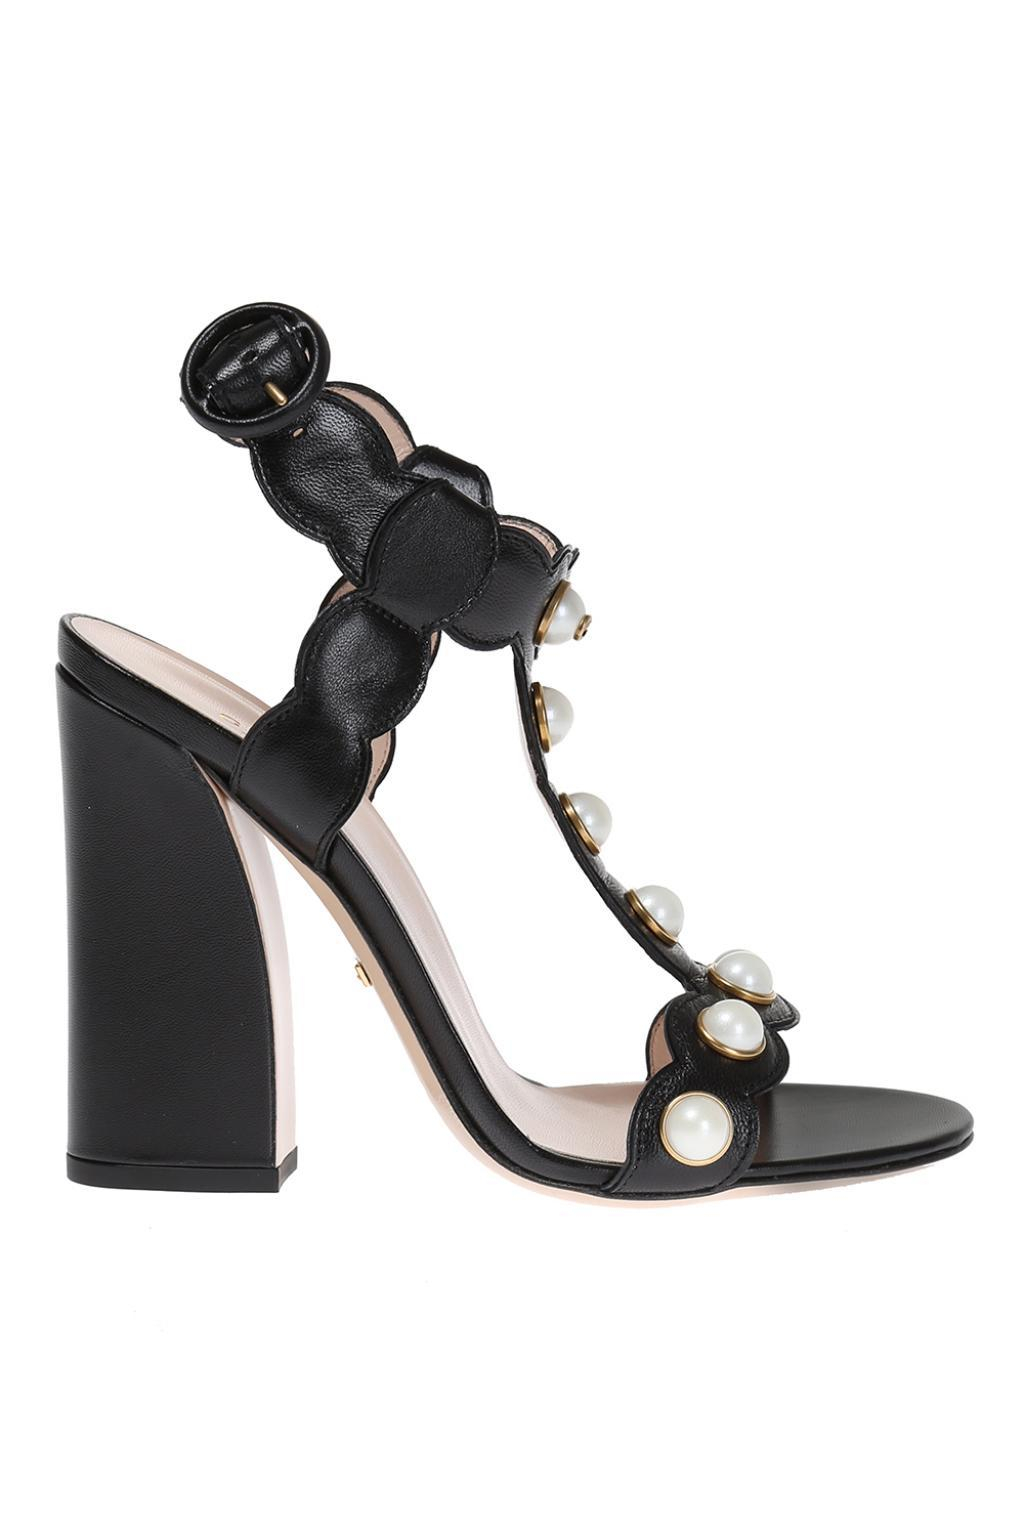 672067ec9a36 Lyst - Gucci  willow  Heel Sandals in Black